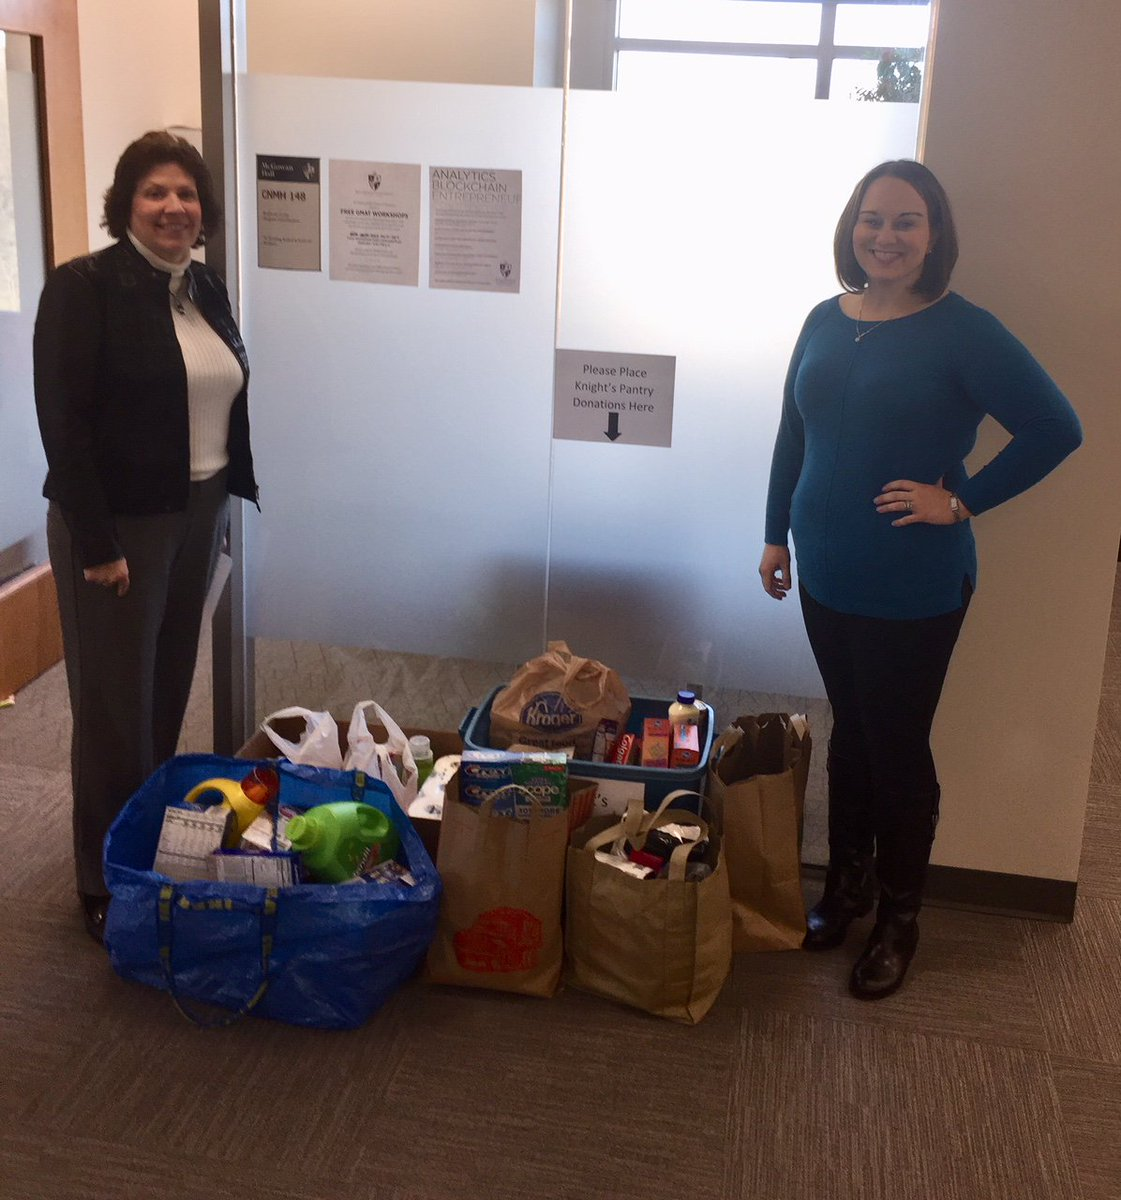 Two weeks ago we learned about Knights Pantry, a food pantry for students who need it here at Bellarmine. The Rubel School of Business rallied, and today we were able to donate a whole pile of goods! #weloveourstudents #GoKnights #helpinghand